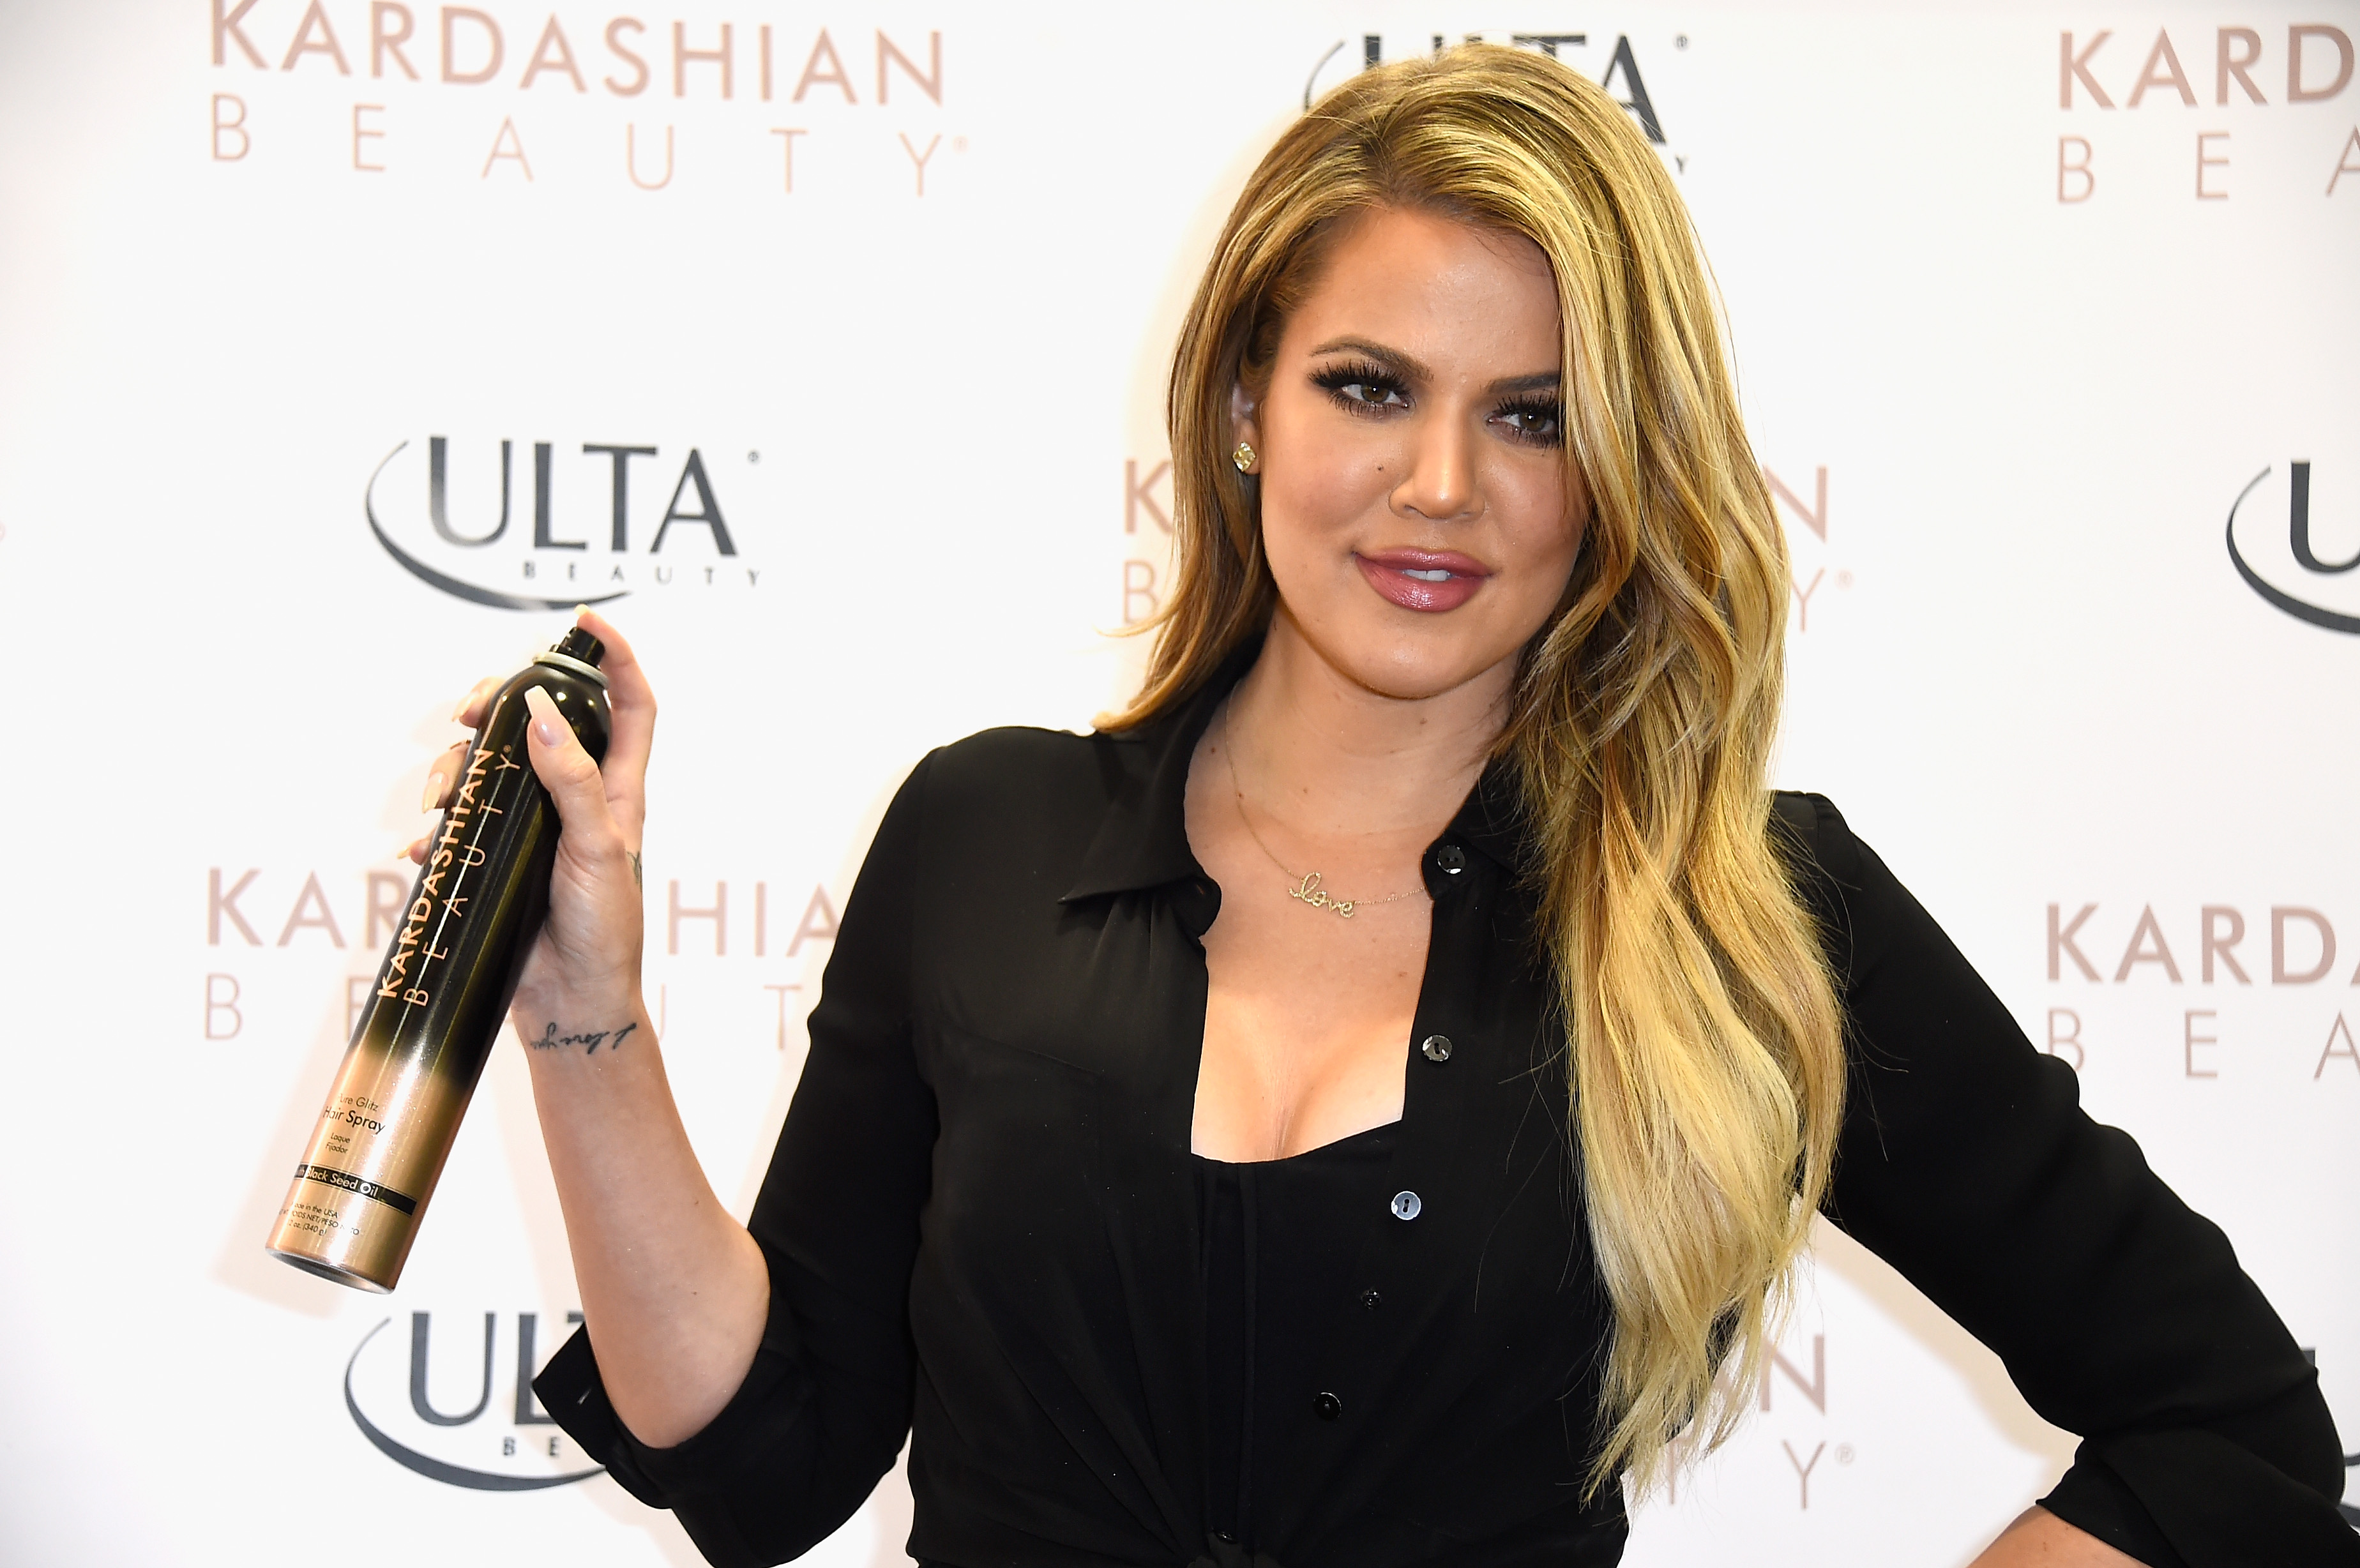 Khloe Kardashian Reveals Why Shes Worn A Weave For 15 Years